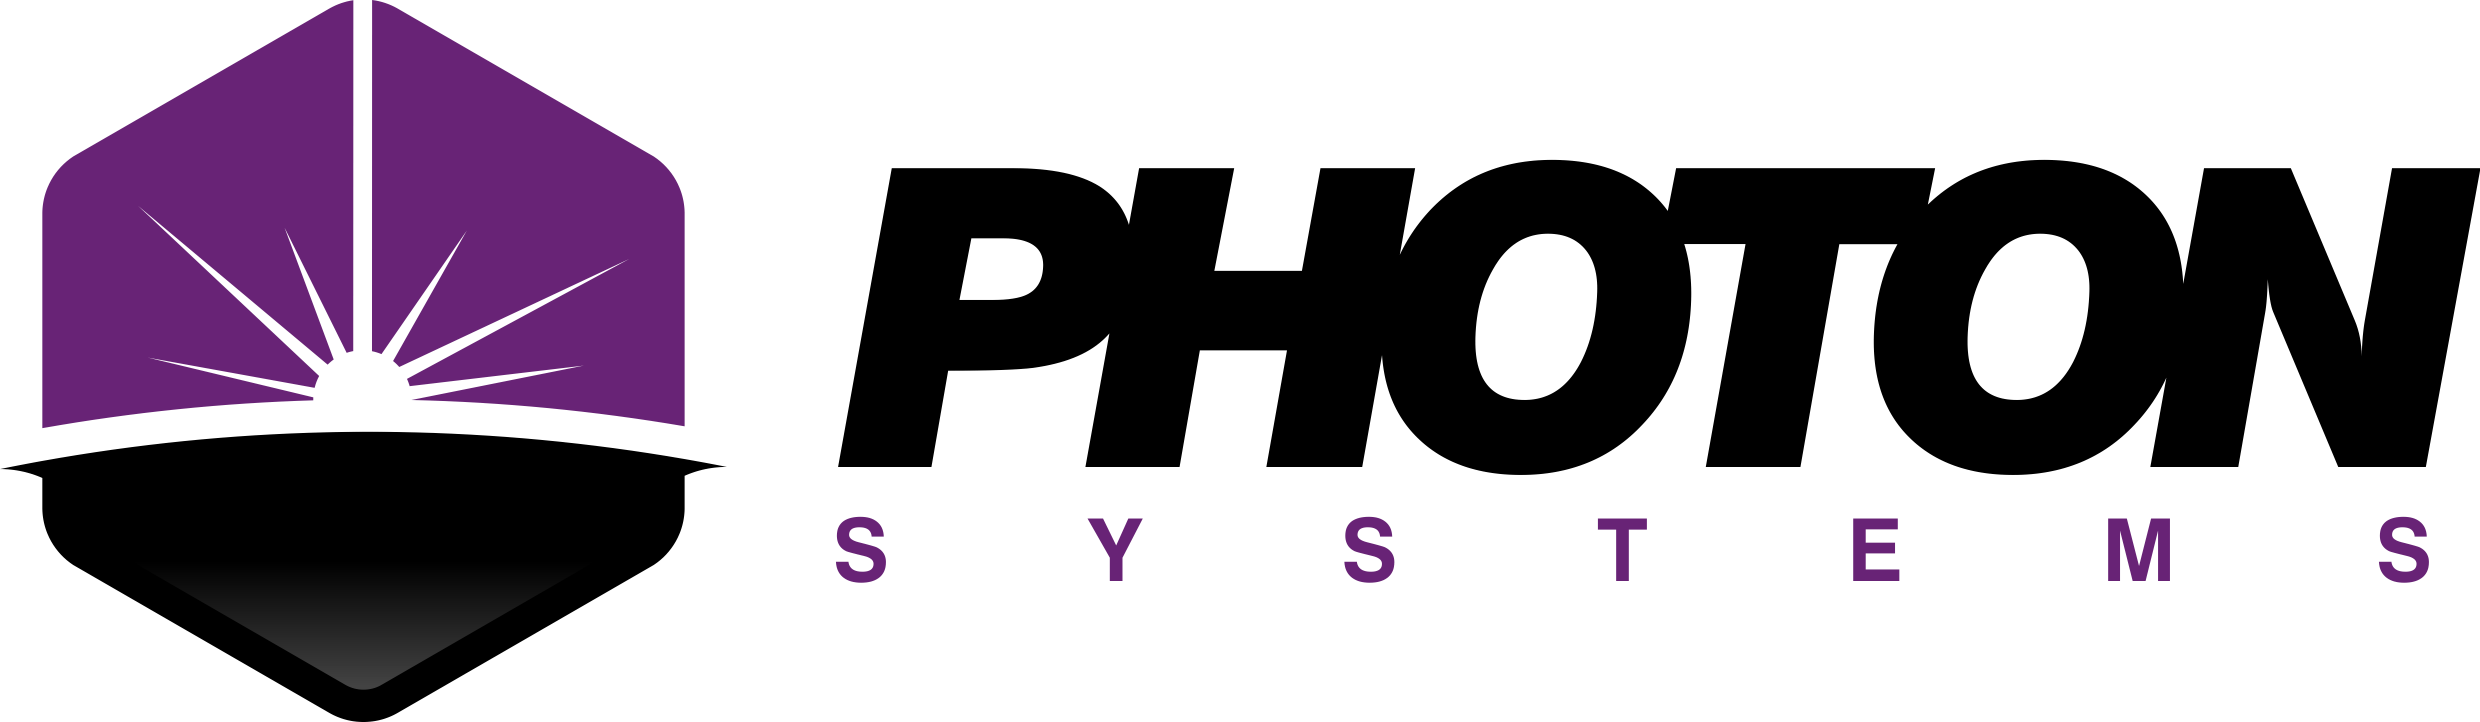 photon-systems-logo.png